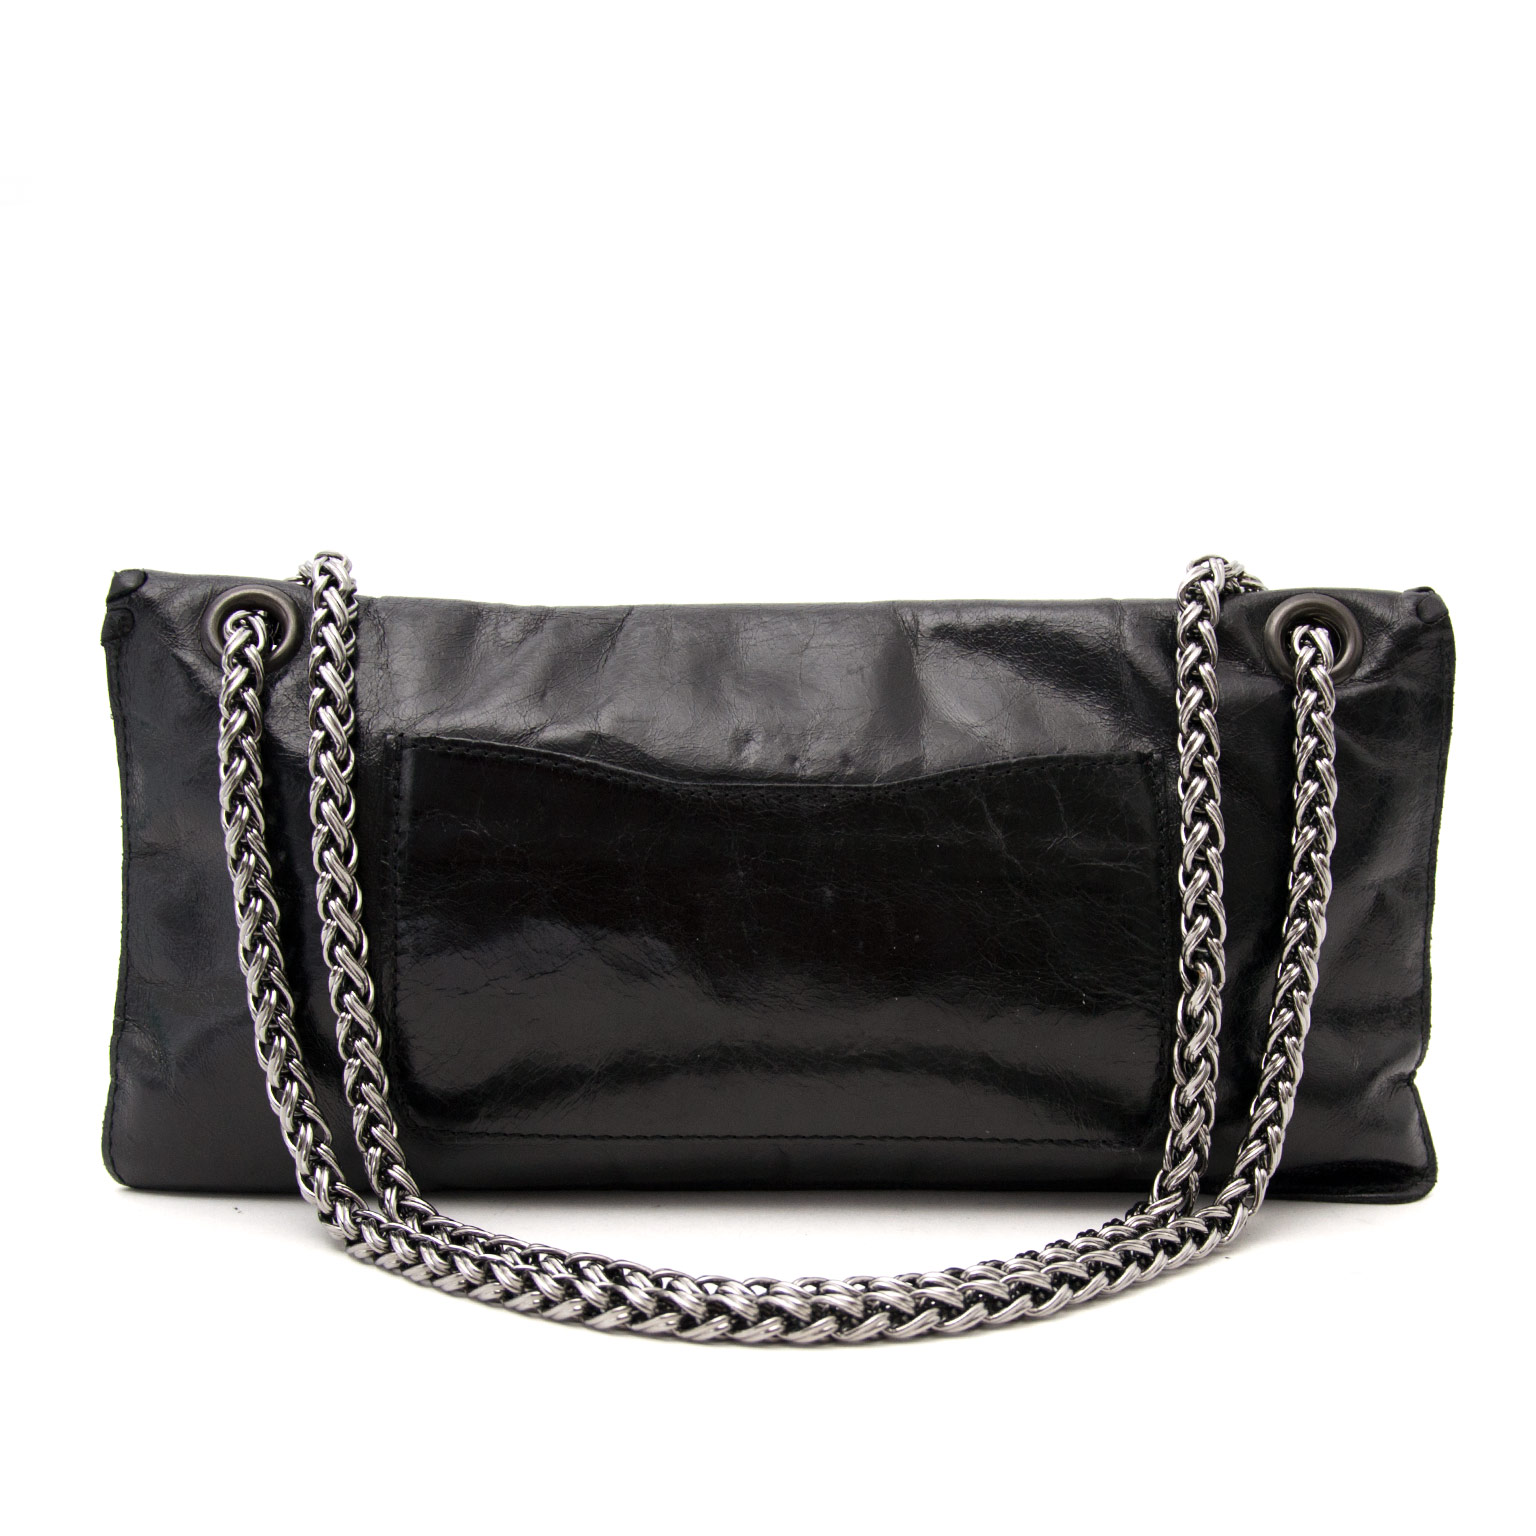 We buy and sell your secondhand luxury handbags such as  Balmain Black Leather Shoulder Bag